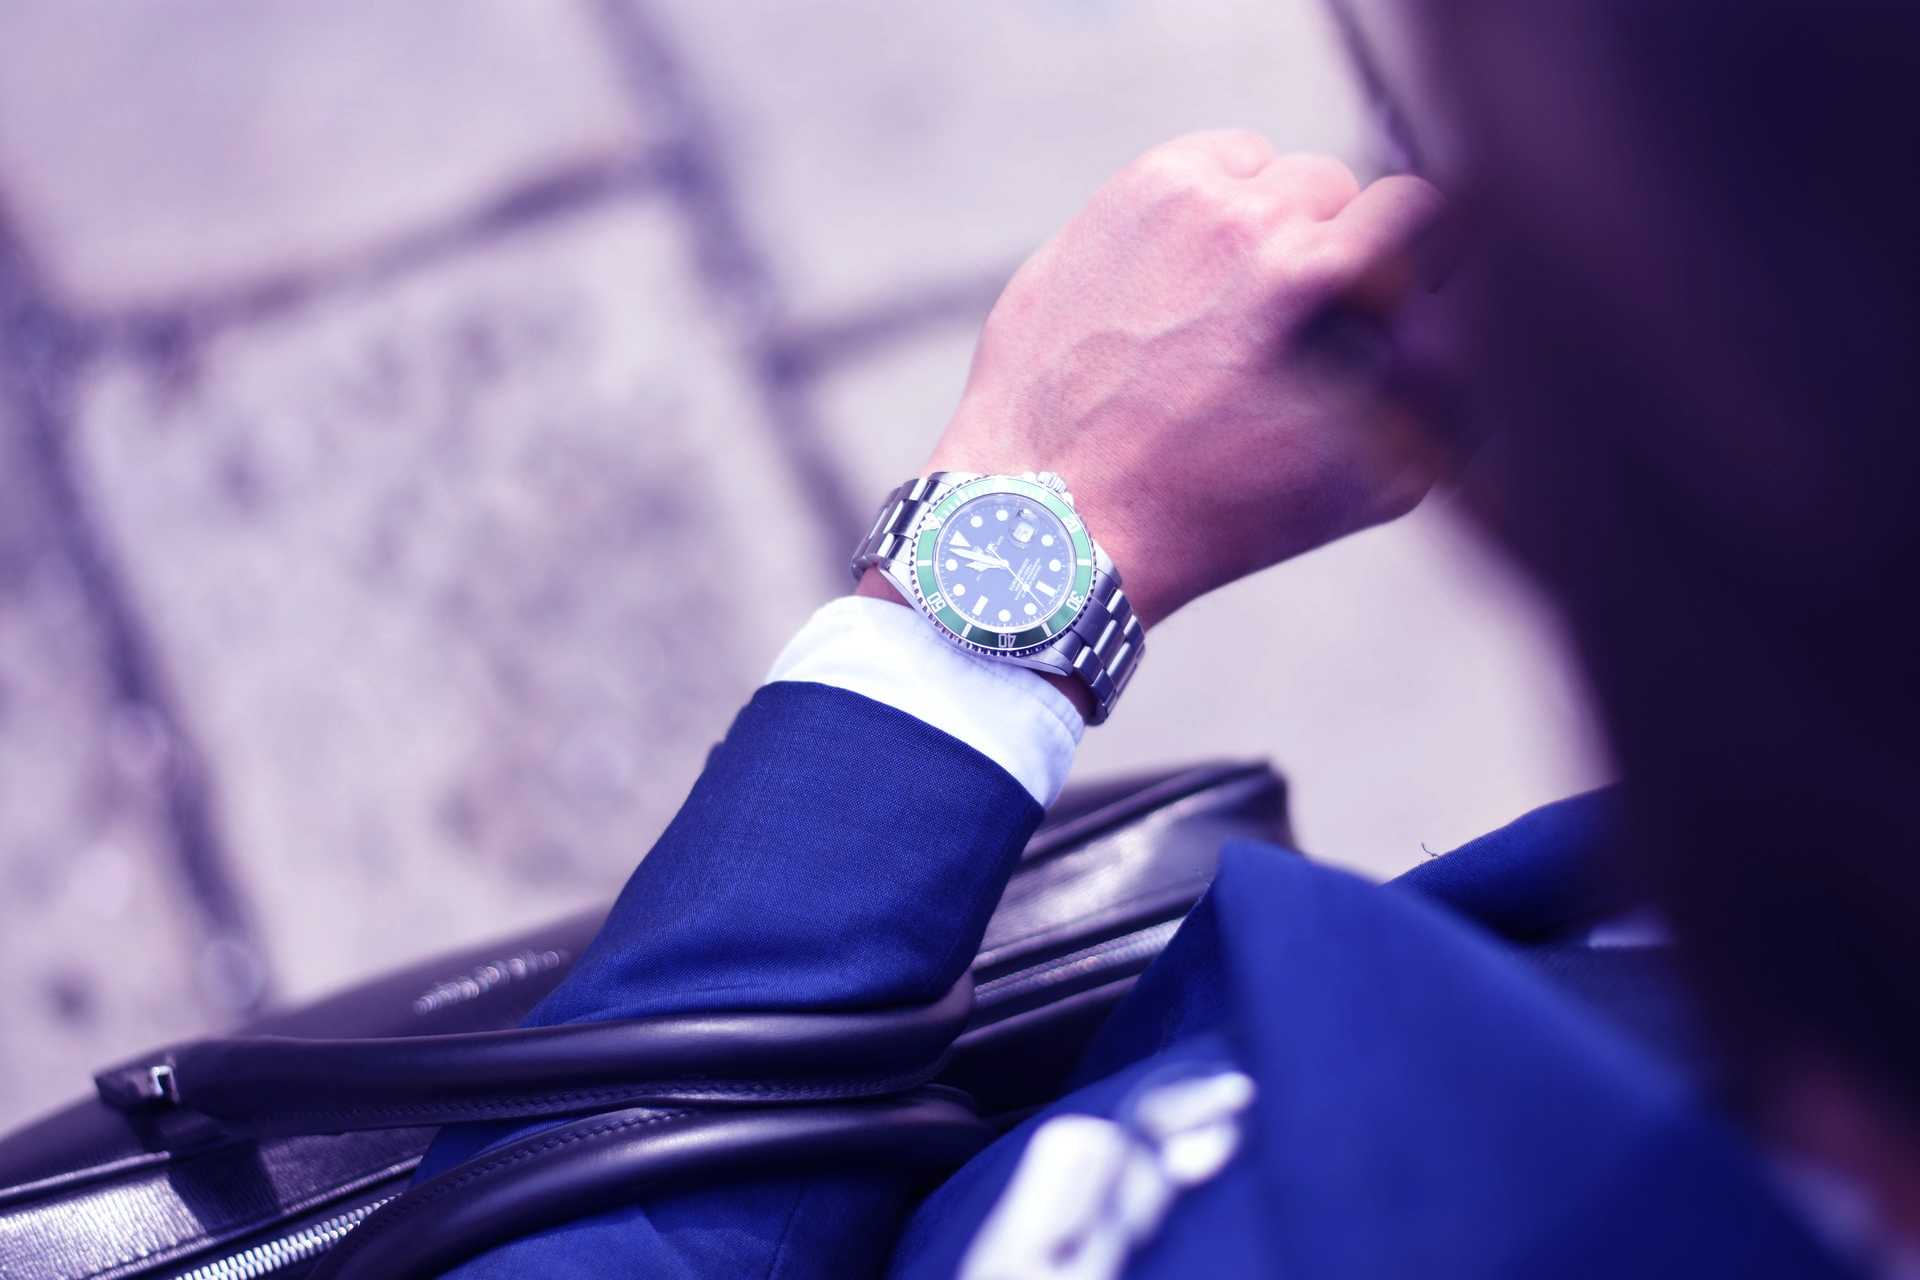 Getting To Know Piaget's Top Timepieces Collections